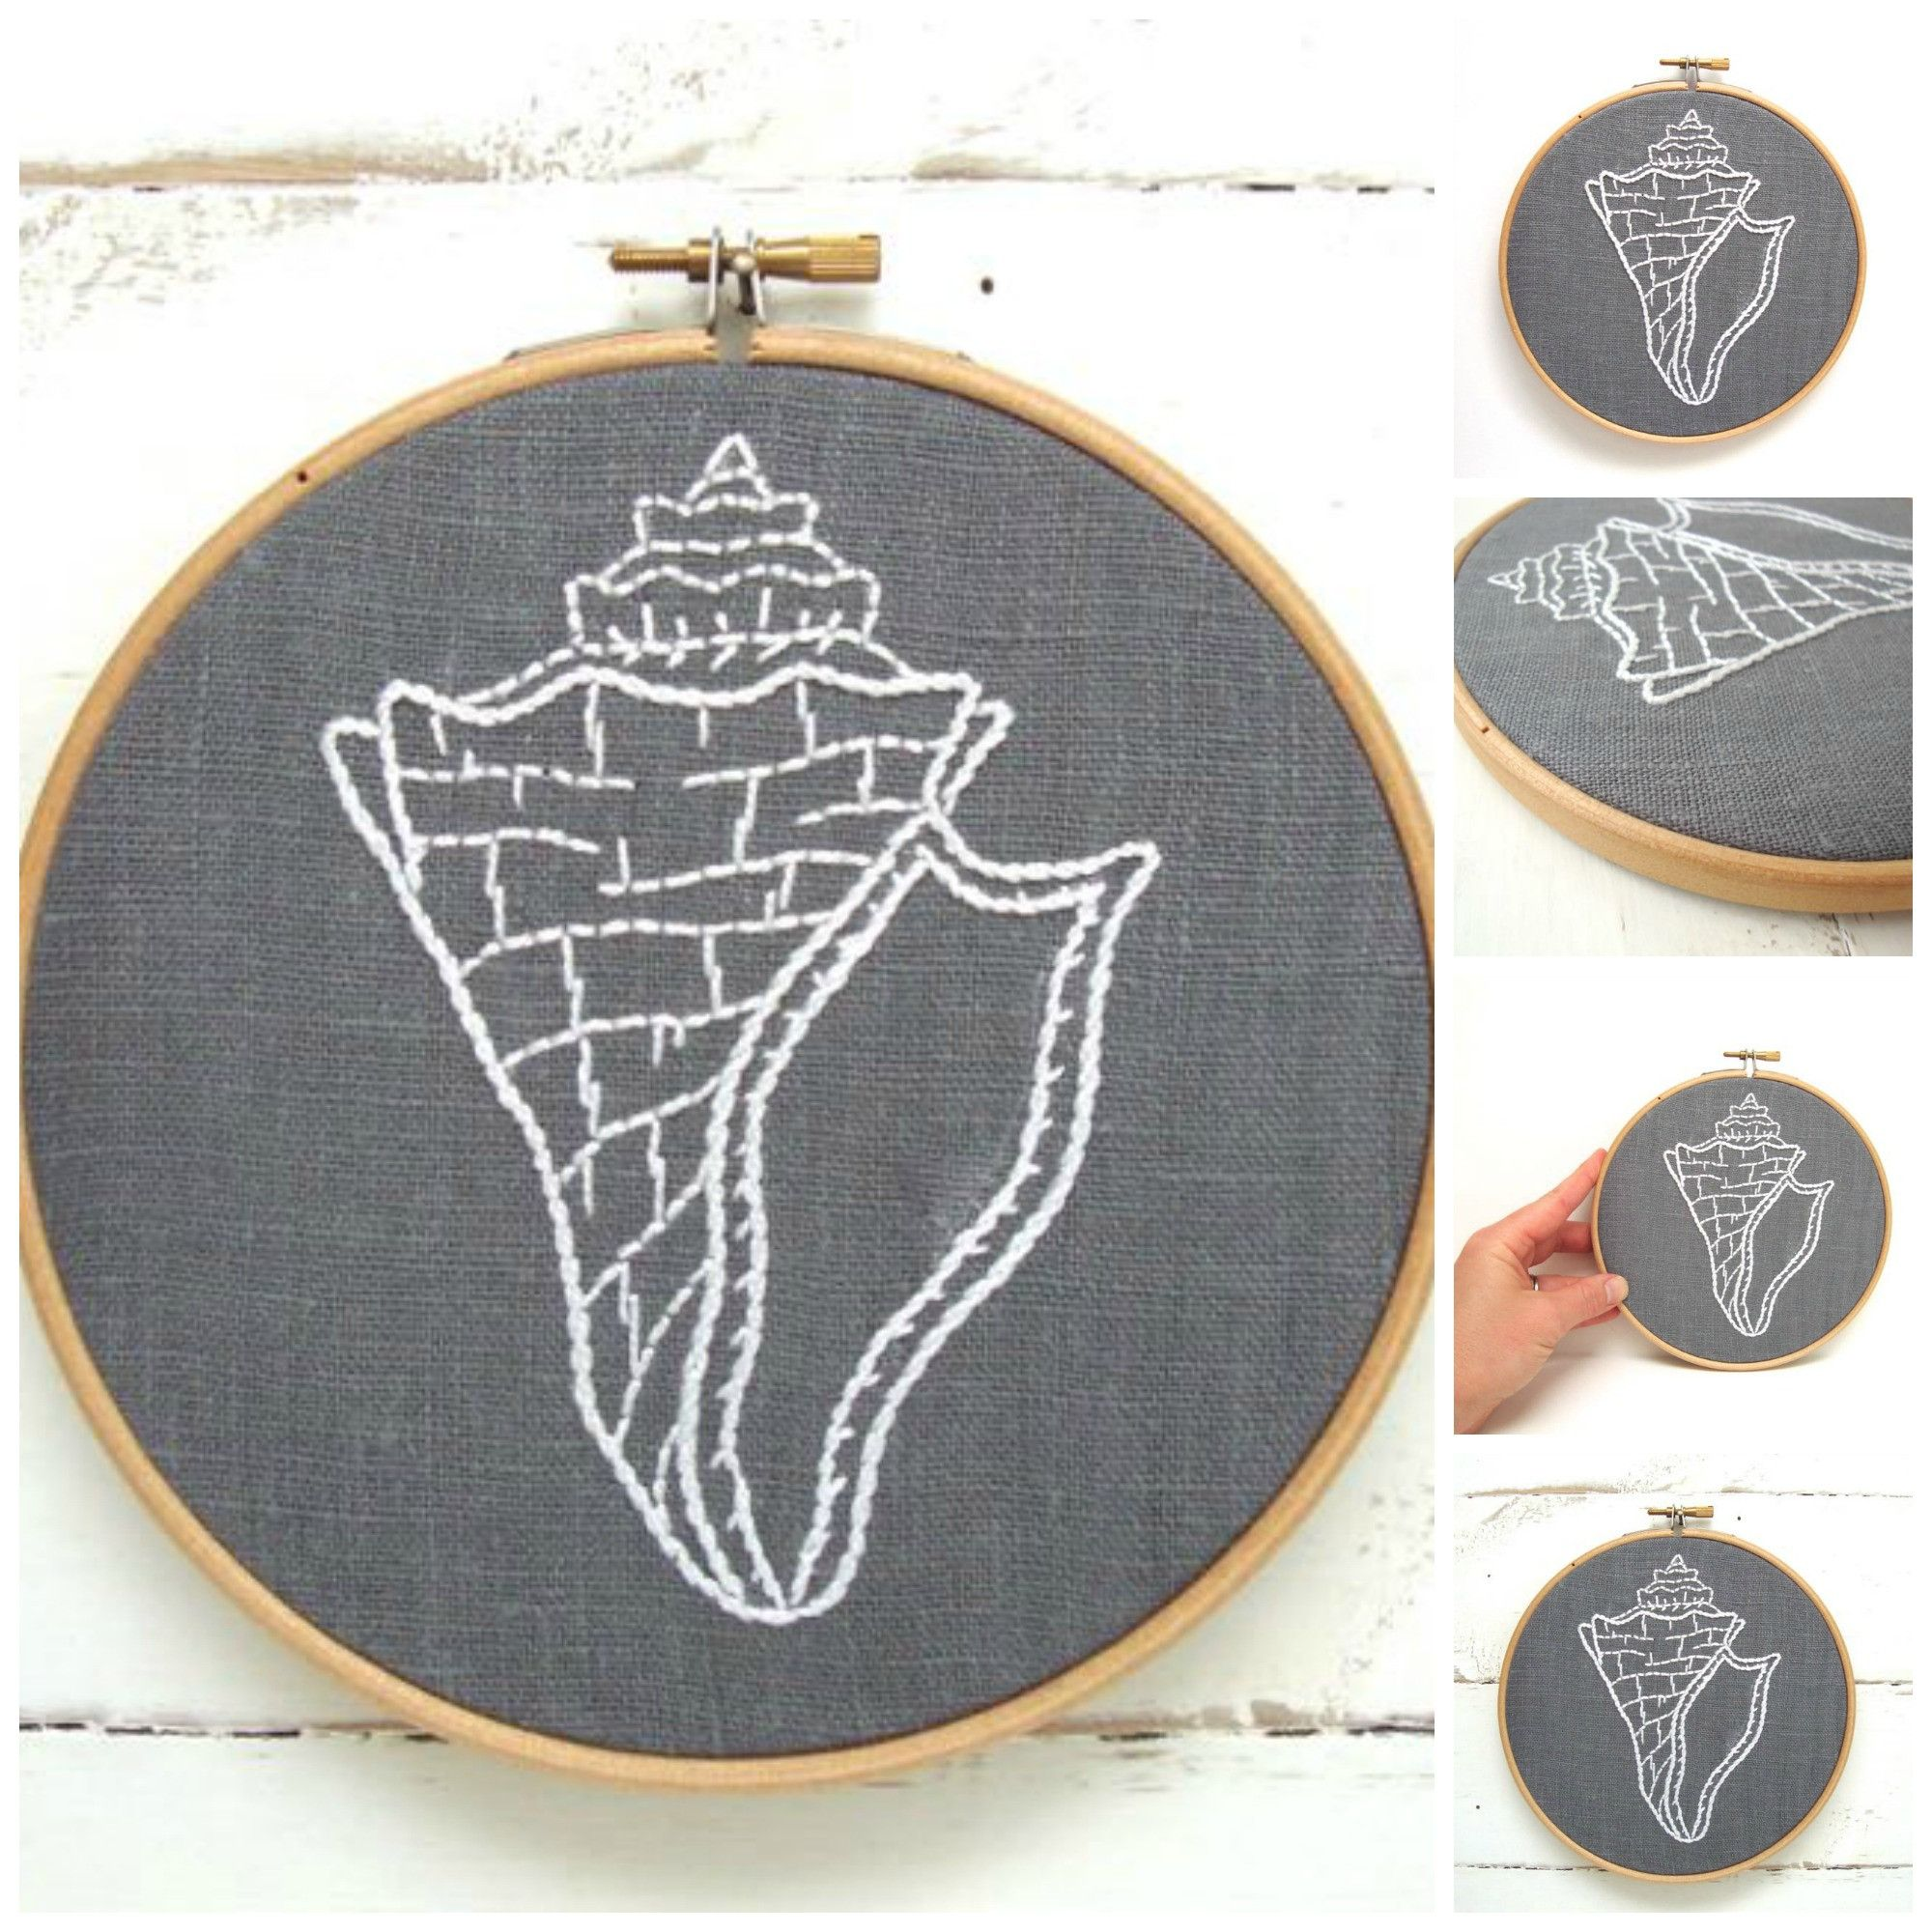 Diy embroidery hoop art kit stitch your way to bliss with this